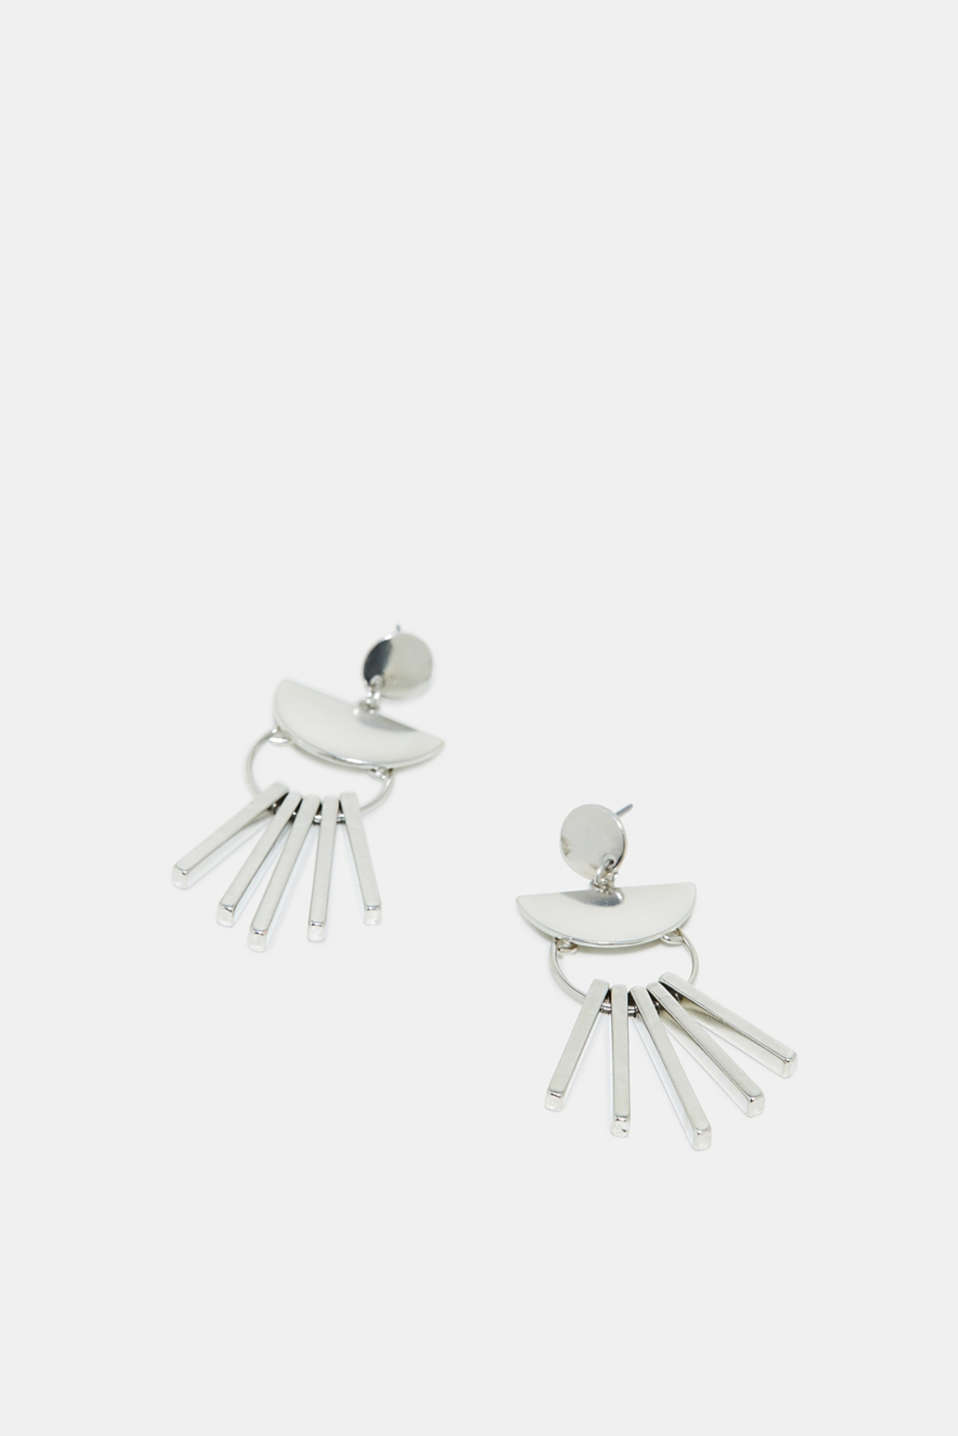 The geometric shape and highly polished metal gives these earrings a trendy look.